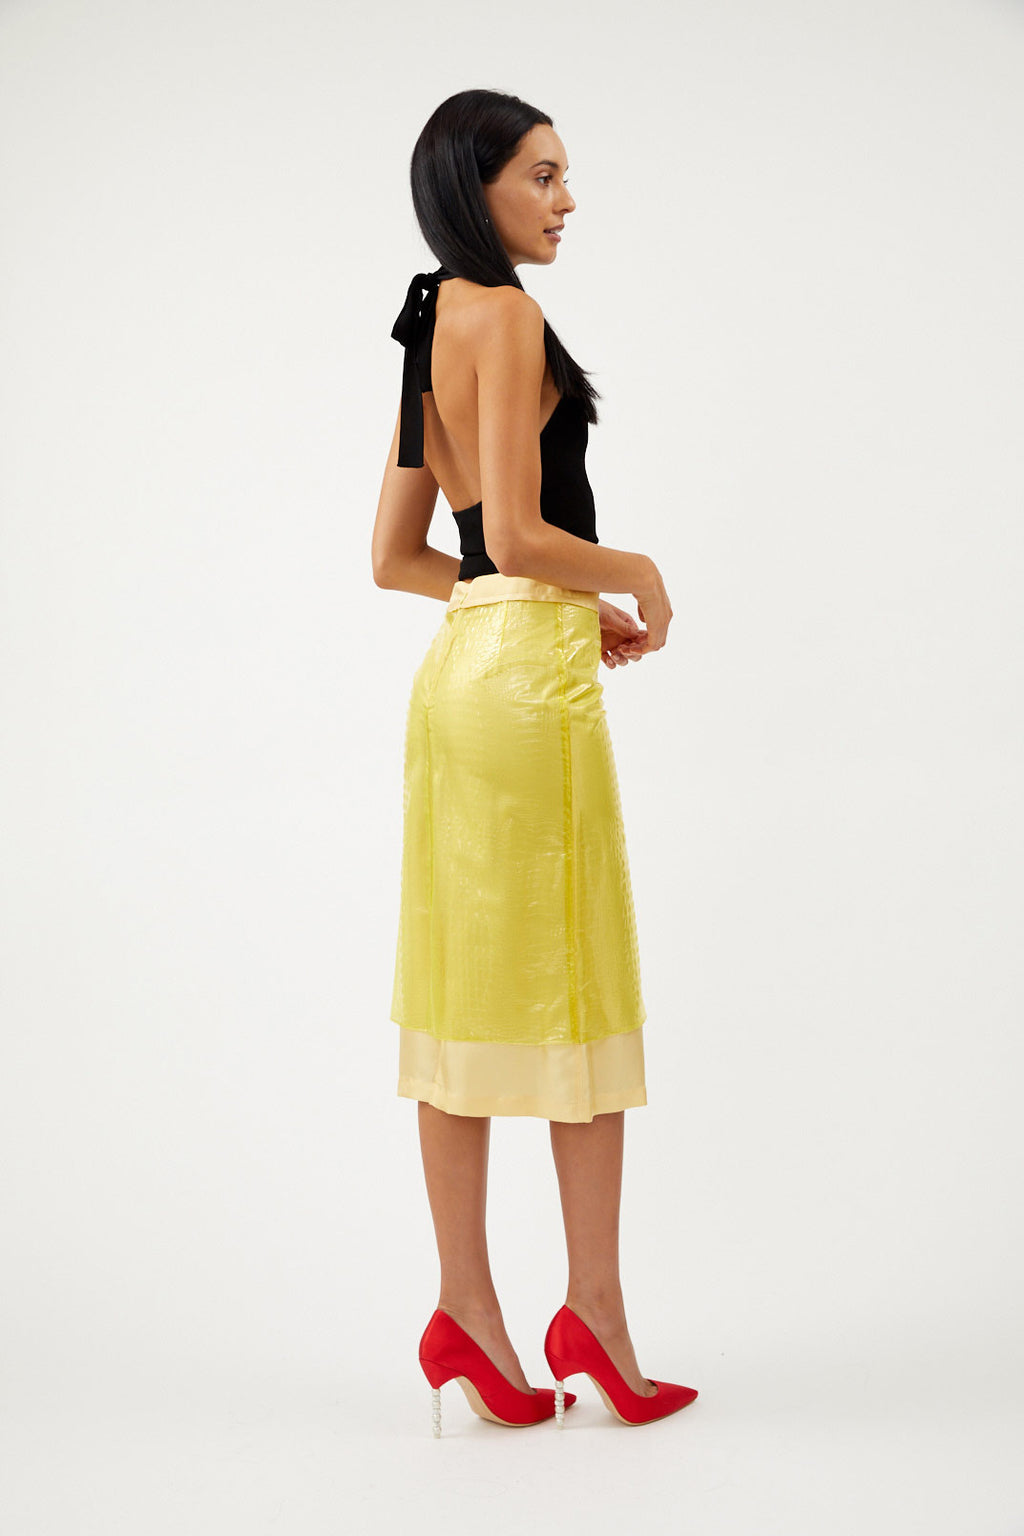 Sula Embossed Plastic Skirt